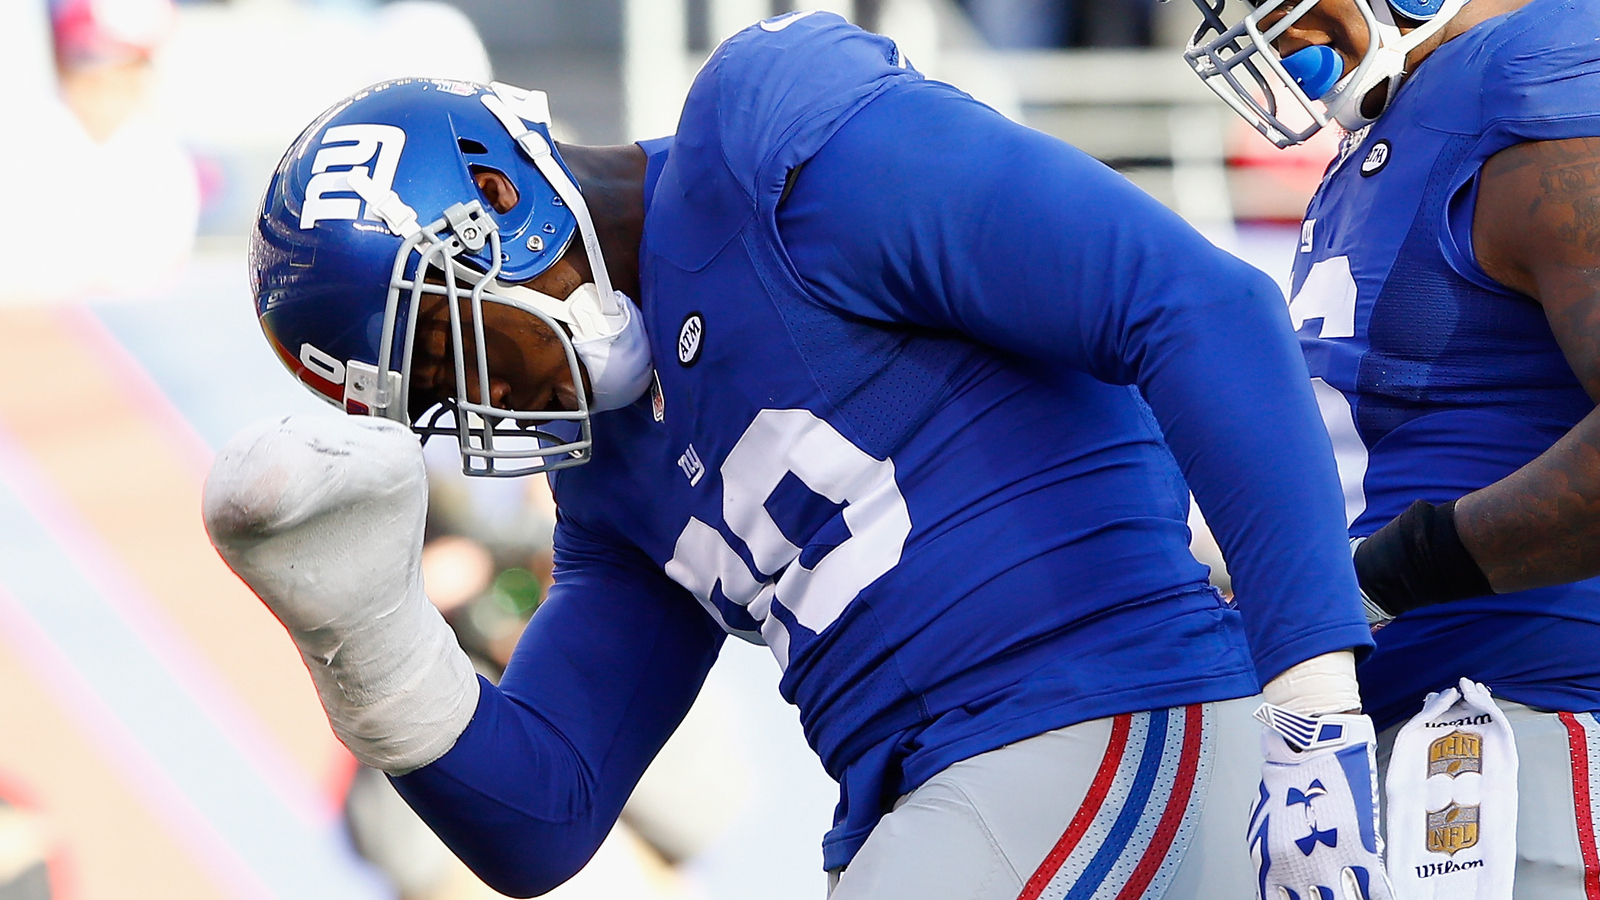 Look out for Jason Pierre-Paul fireworks safety PSAs this 4th of July